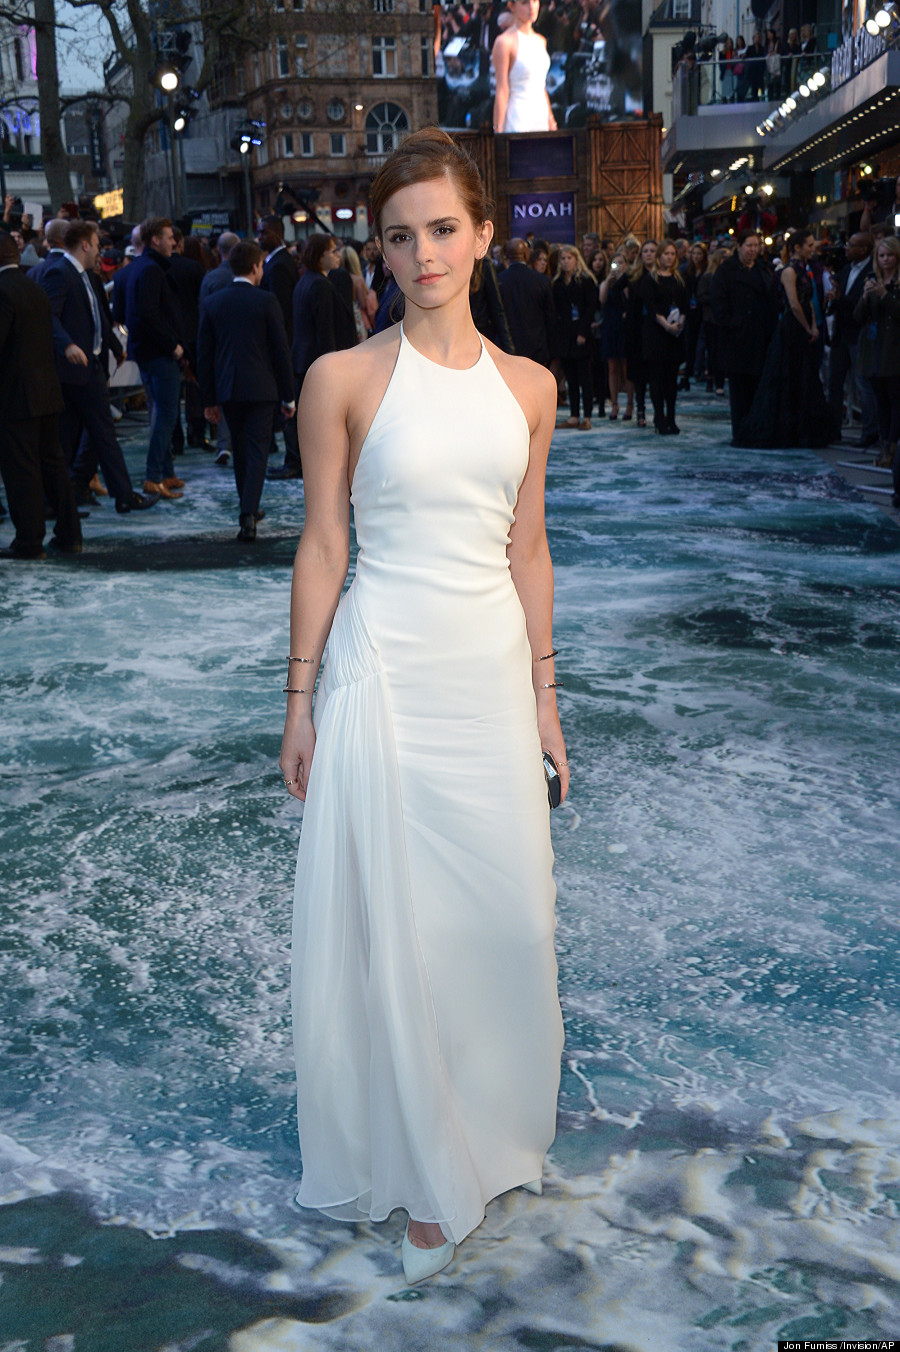 Emma Watson Gets Leggy Wit\' It In Stunning White Dress At \'Noah ...